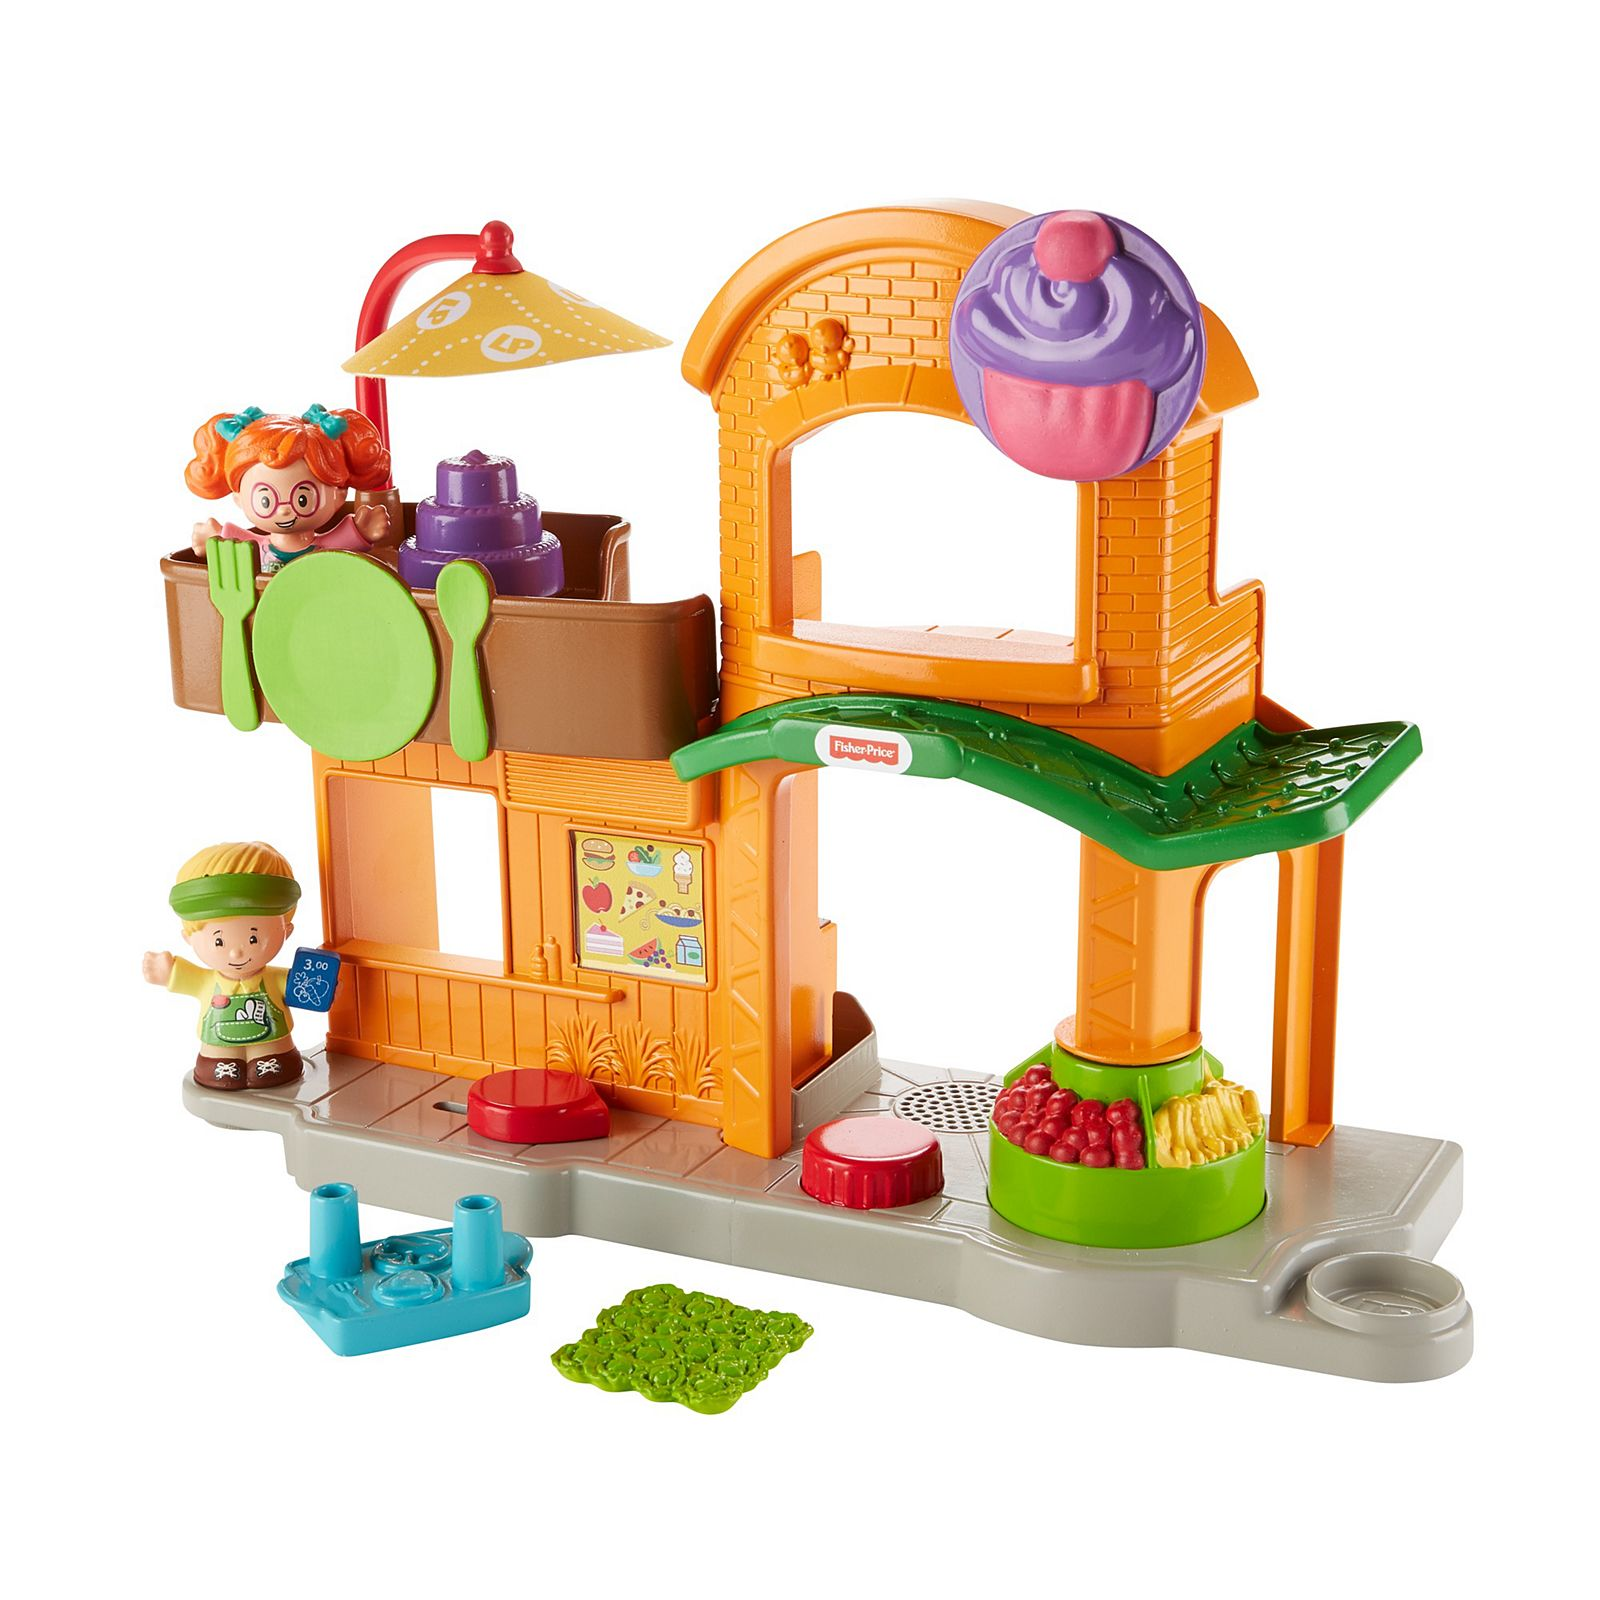 Little People Manners Marketplace Shop Little People Toddler Toys